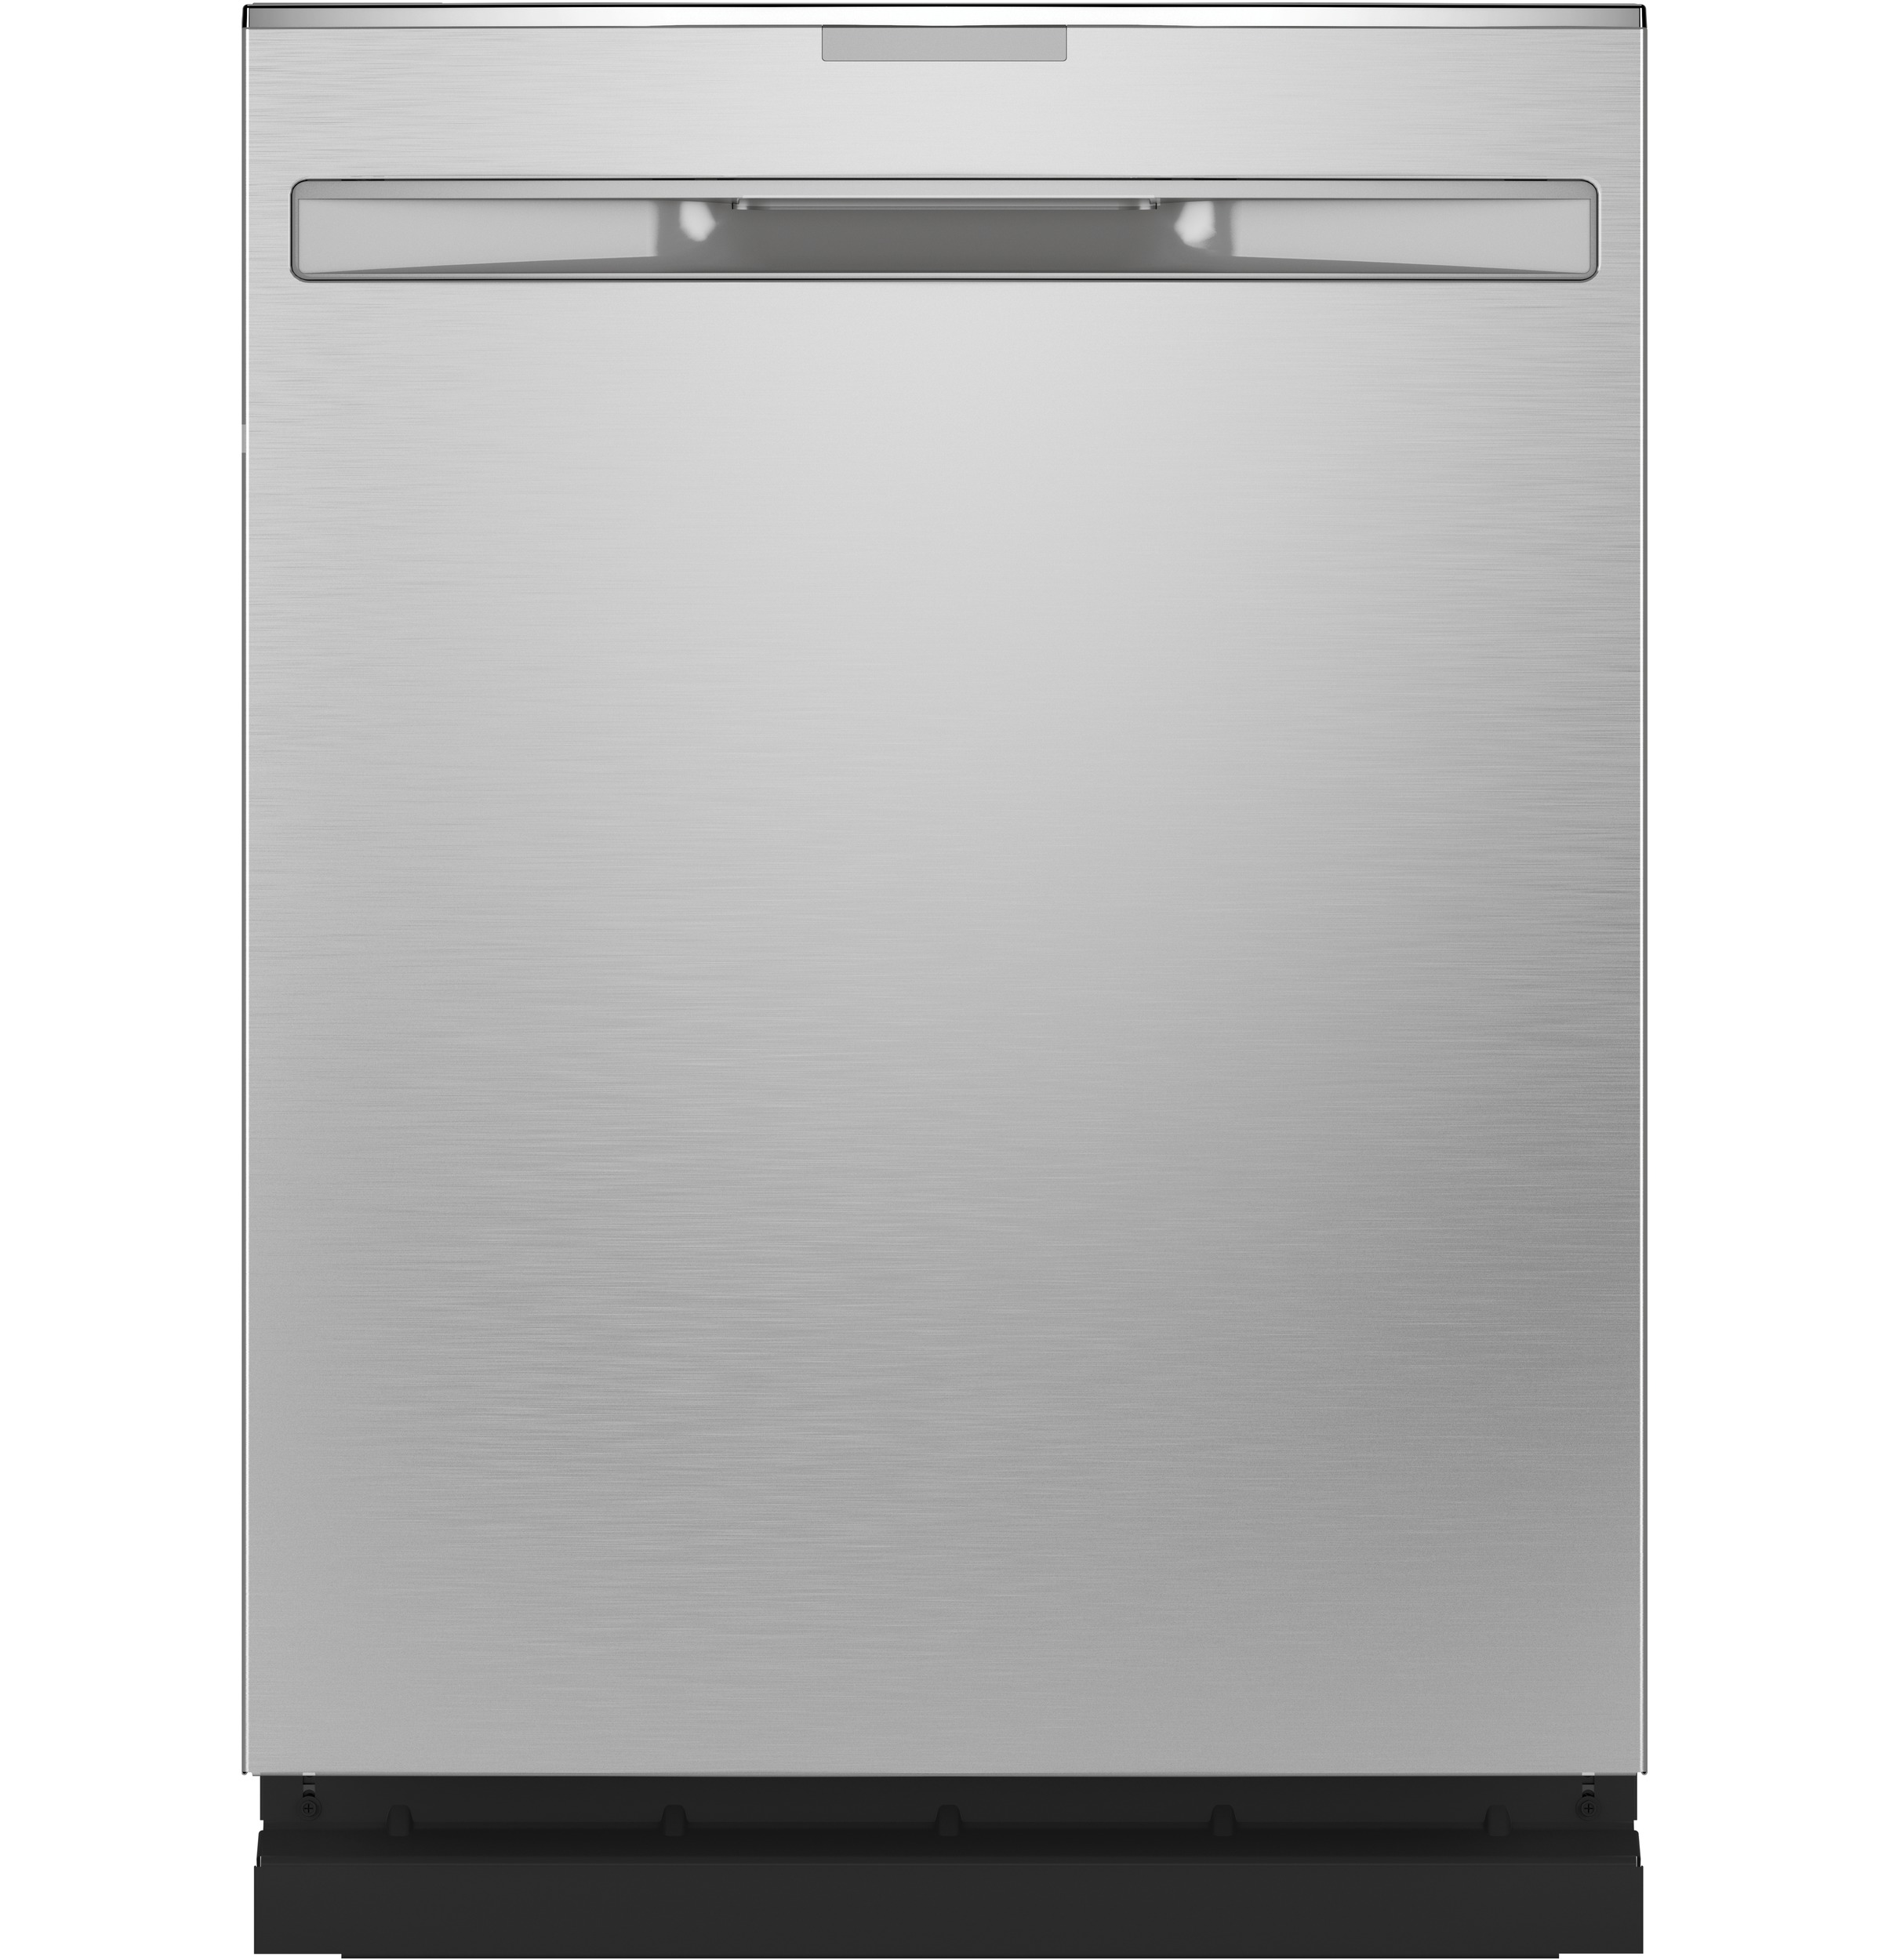 Profile GE Profile™ Stainless Steel Interior Dishwasher with Hidden Controls